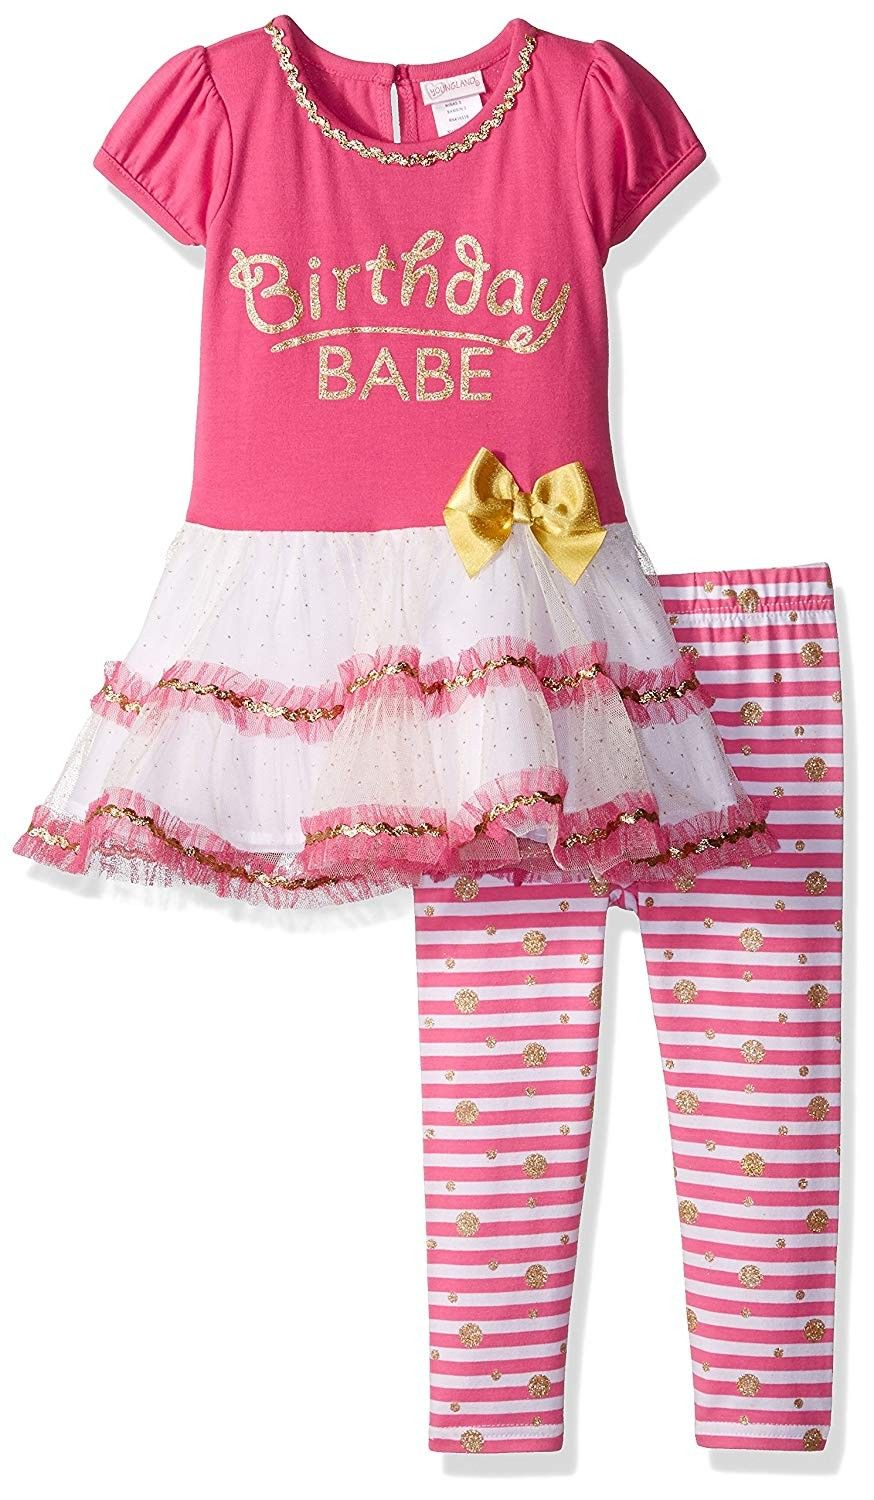 Youngland Girls Birthday Babe Tutu Mini Dress /& Knit Printed Legging